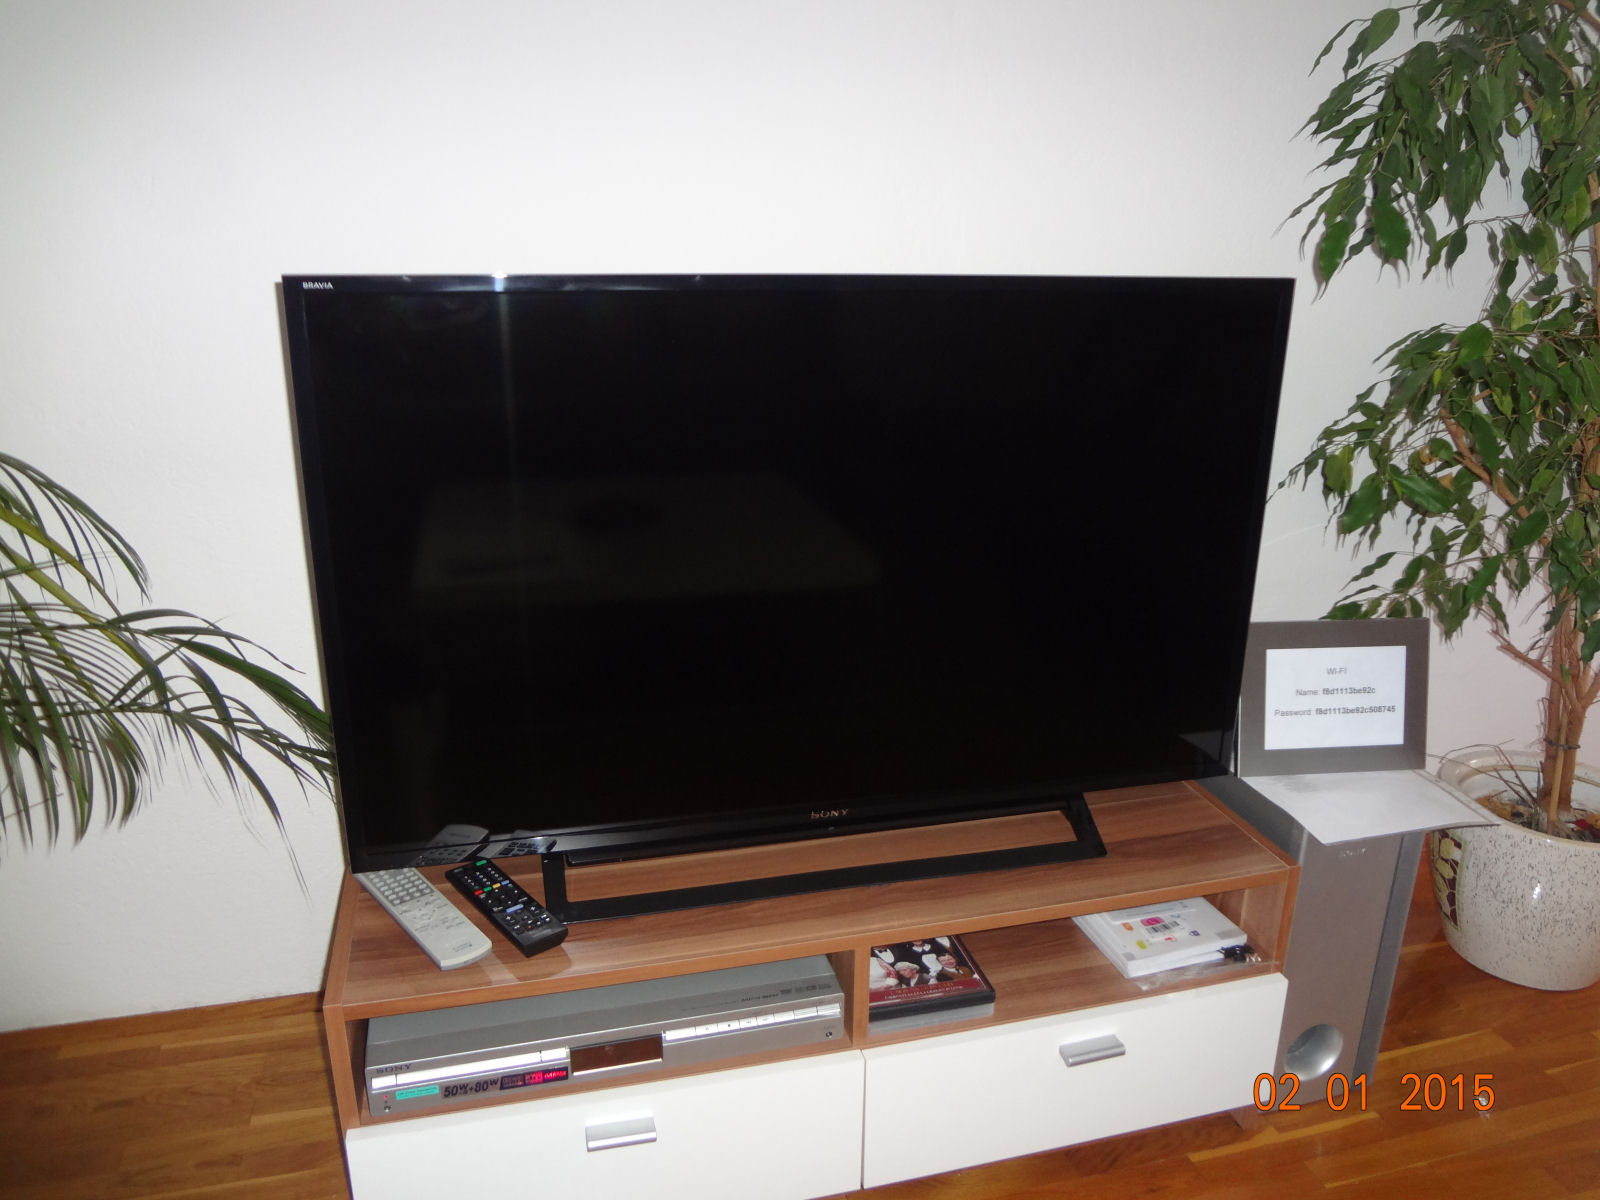 We have just bought a new Sony Bravia LCD TV for the Fine Stay apartment